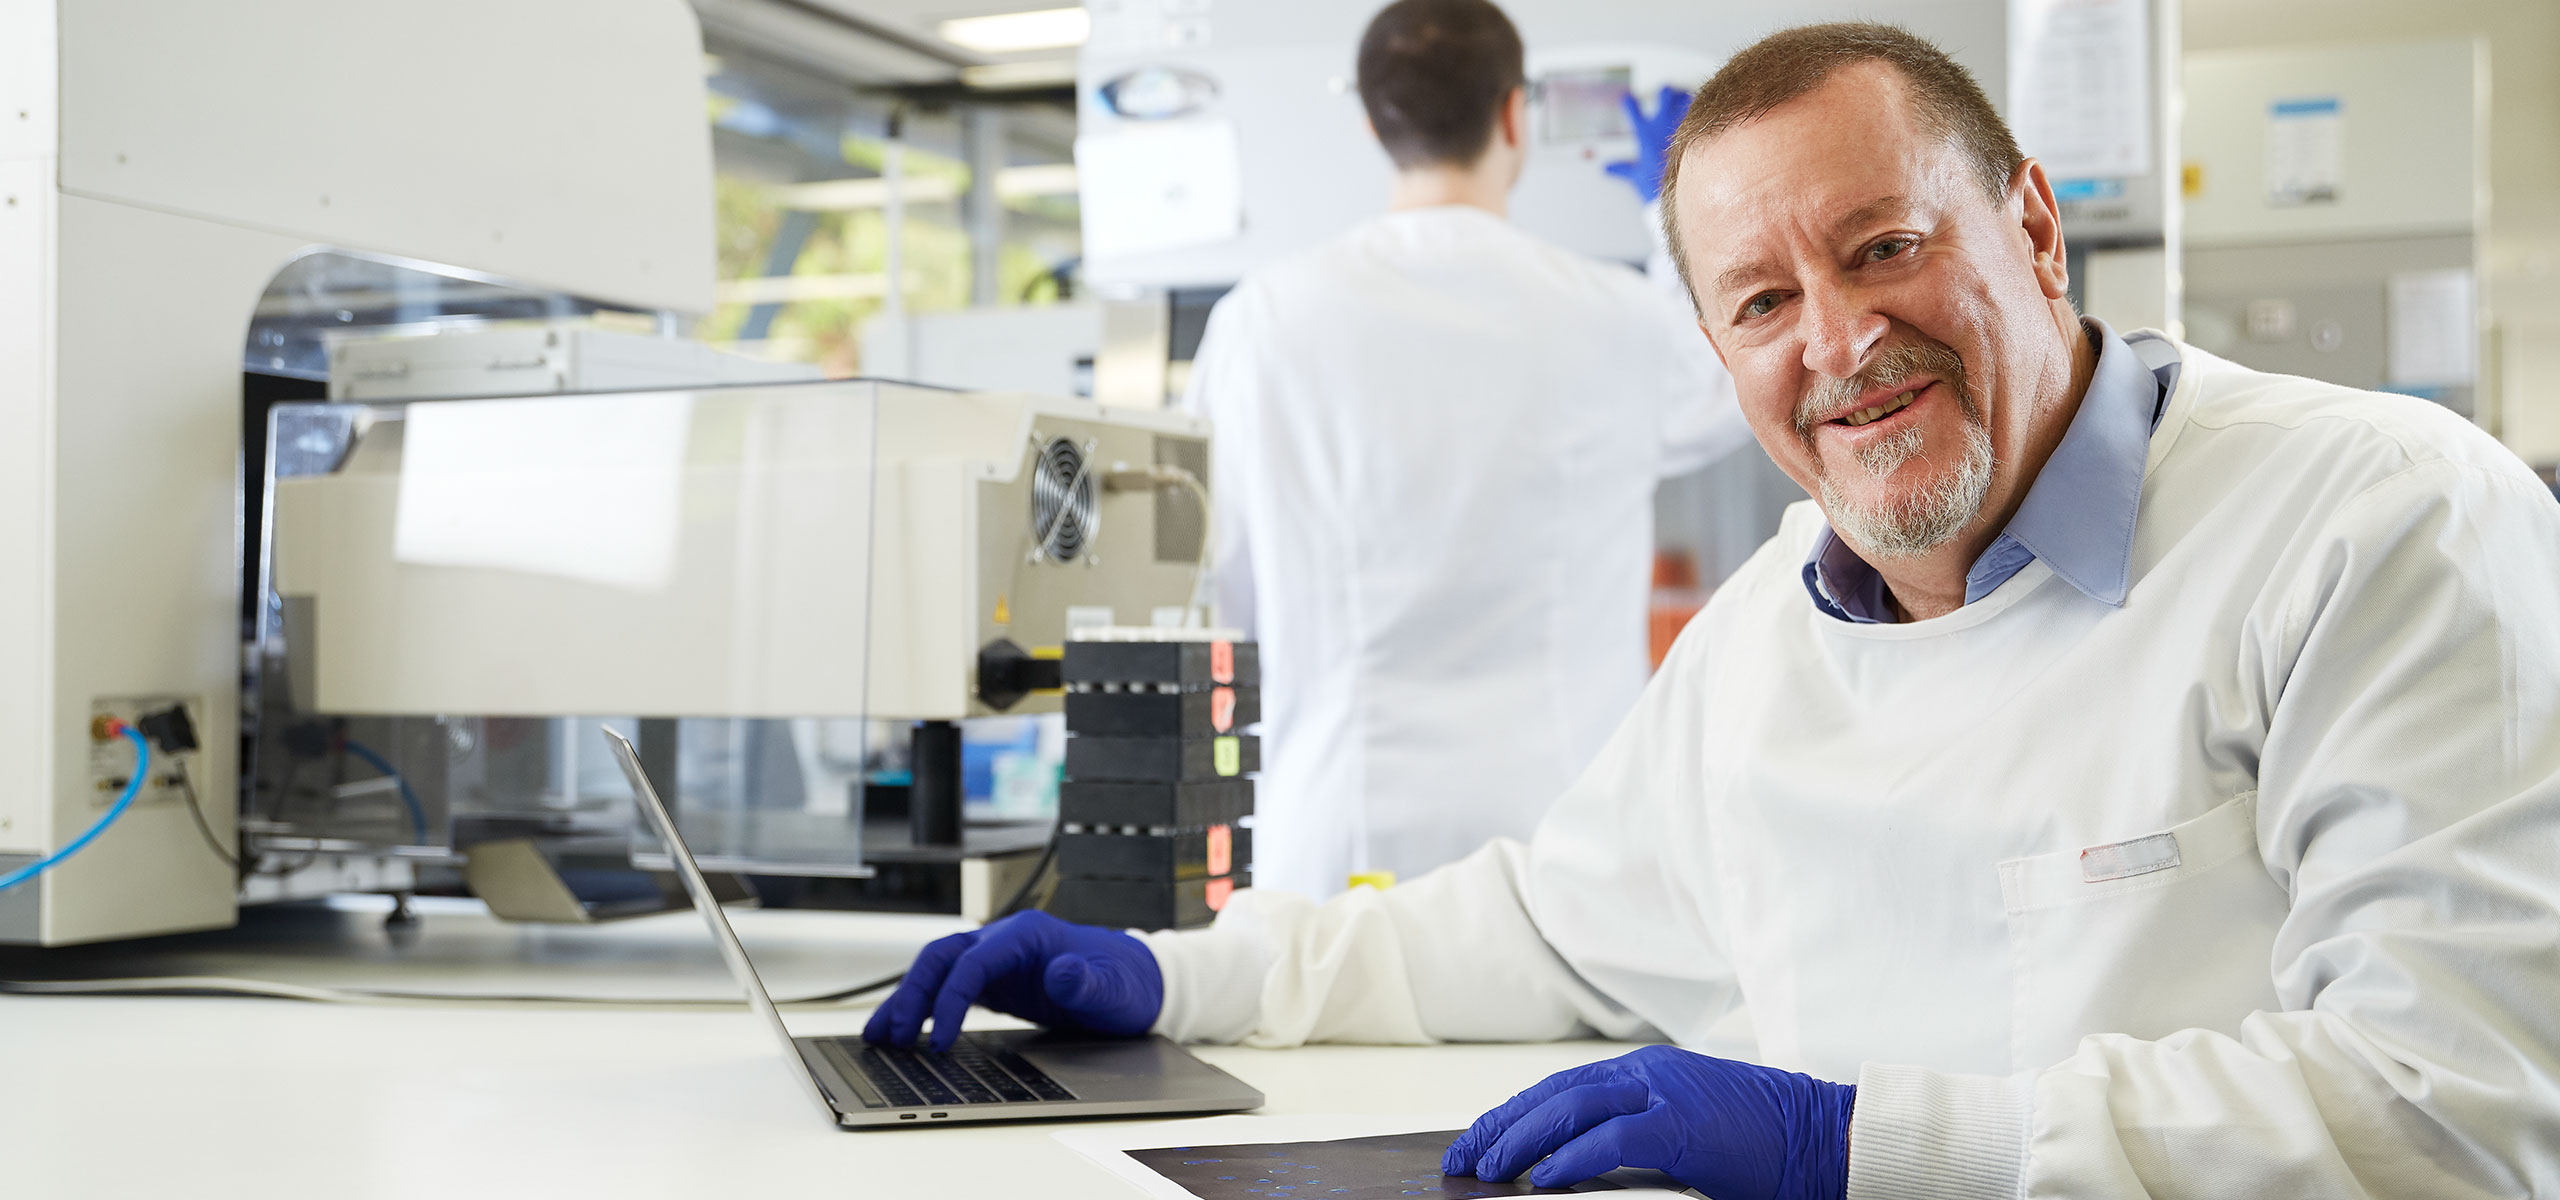 Prof. Steve Wilton, molecular therapy scientist, poses for camera